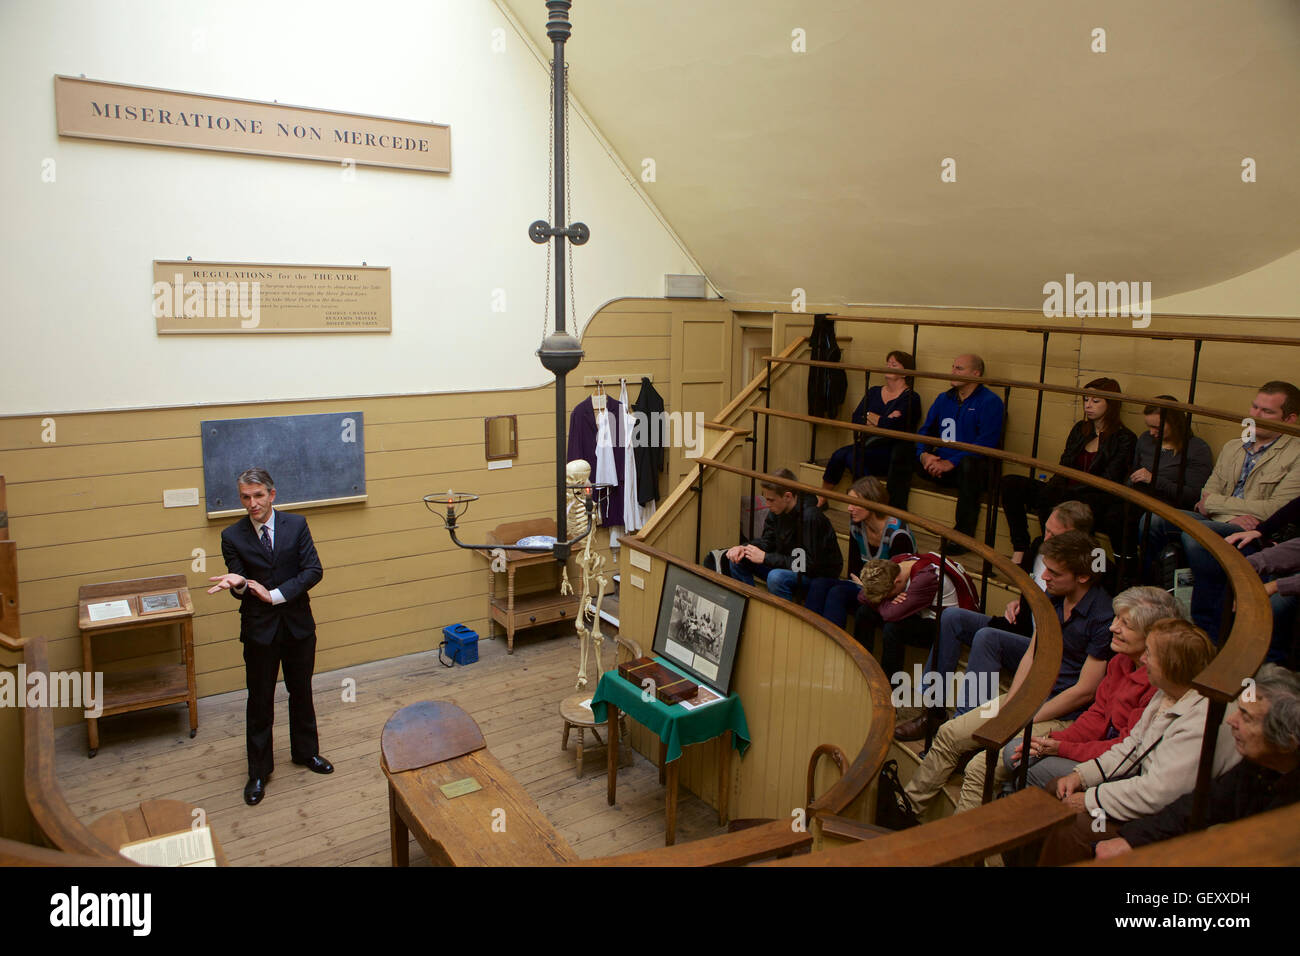 The Old Operating Theatre Museum. - Stock Image